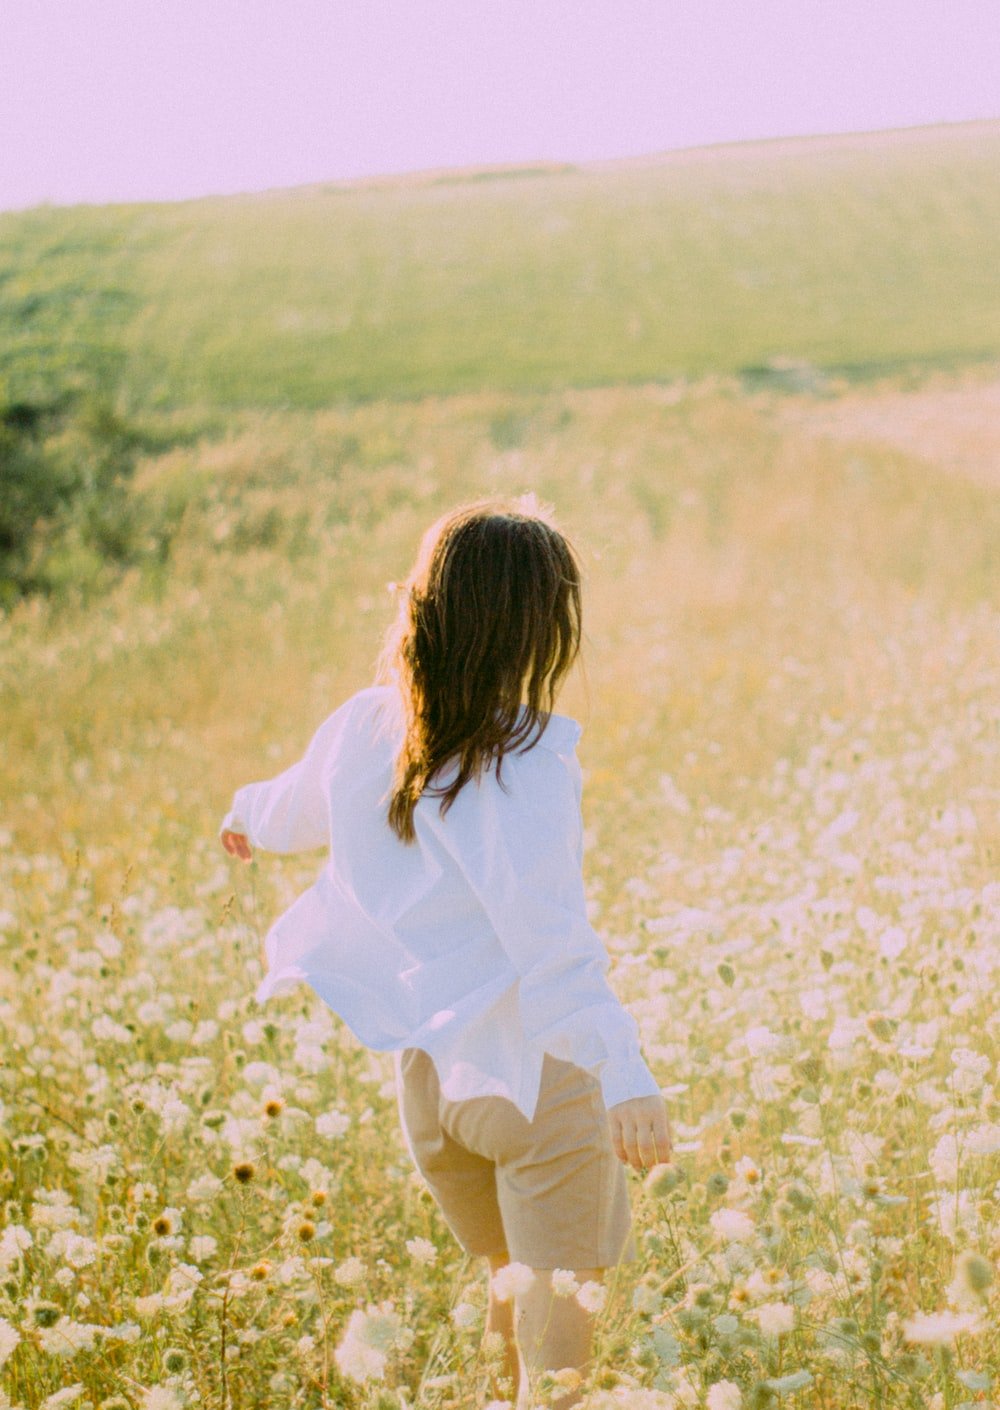 woman in white dress shirt and brown pants walking on yellow flower field during daytime